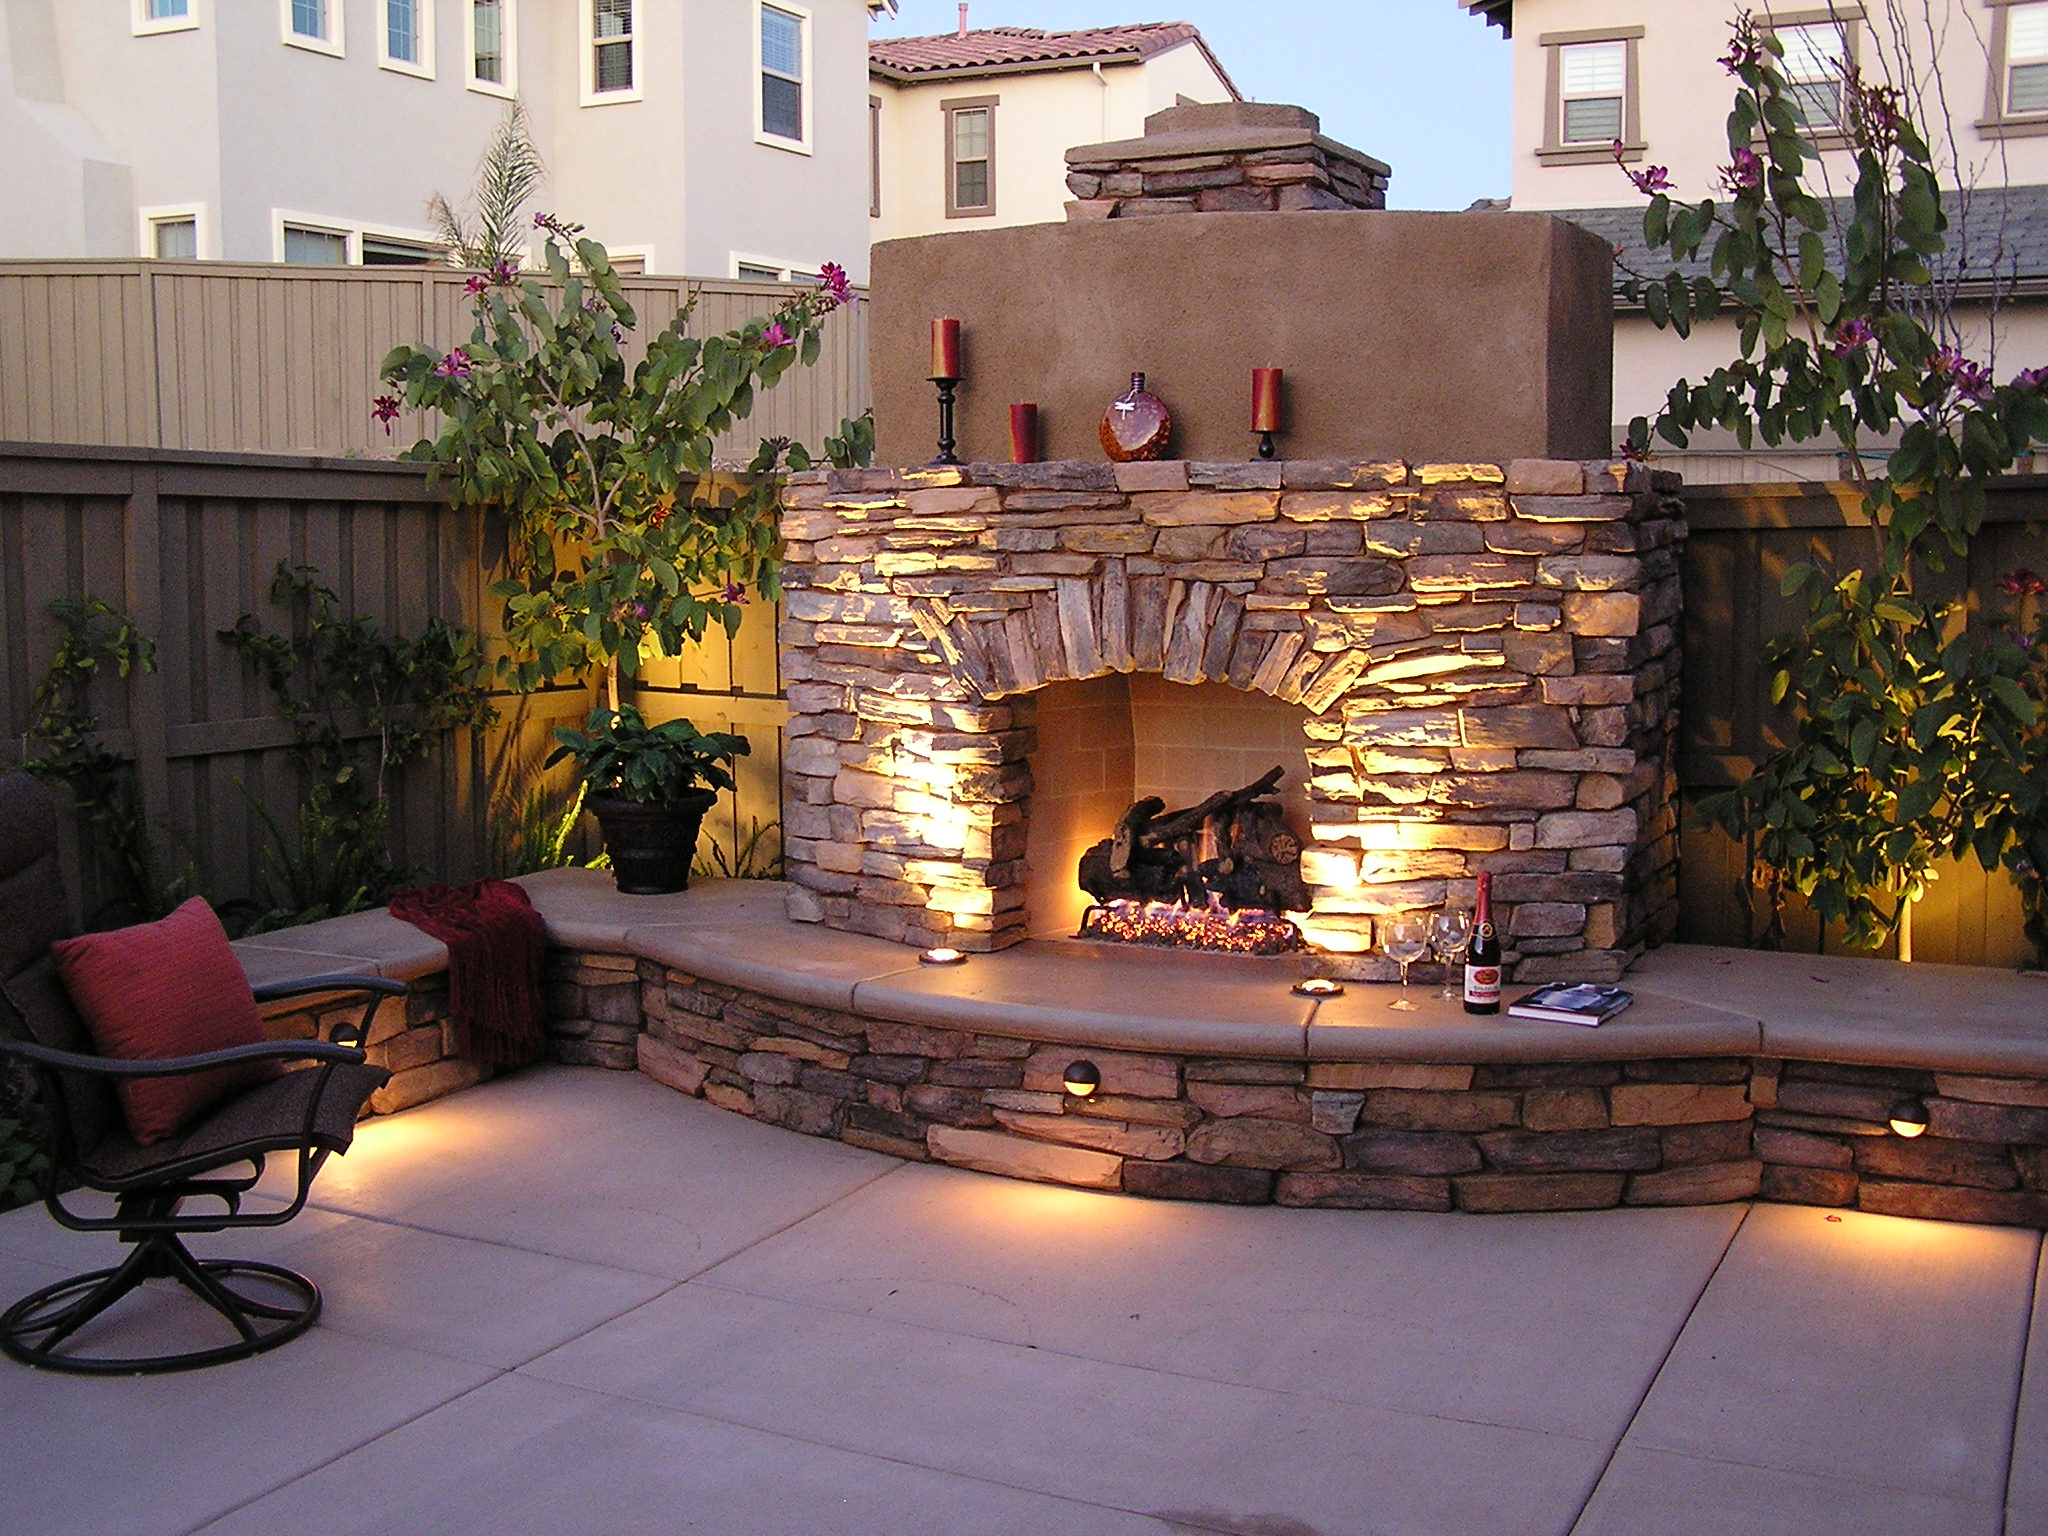 If You Are Looking For A San Diego Landscaping Company, Please Call